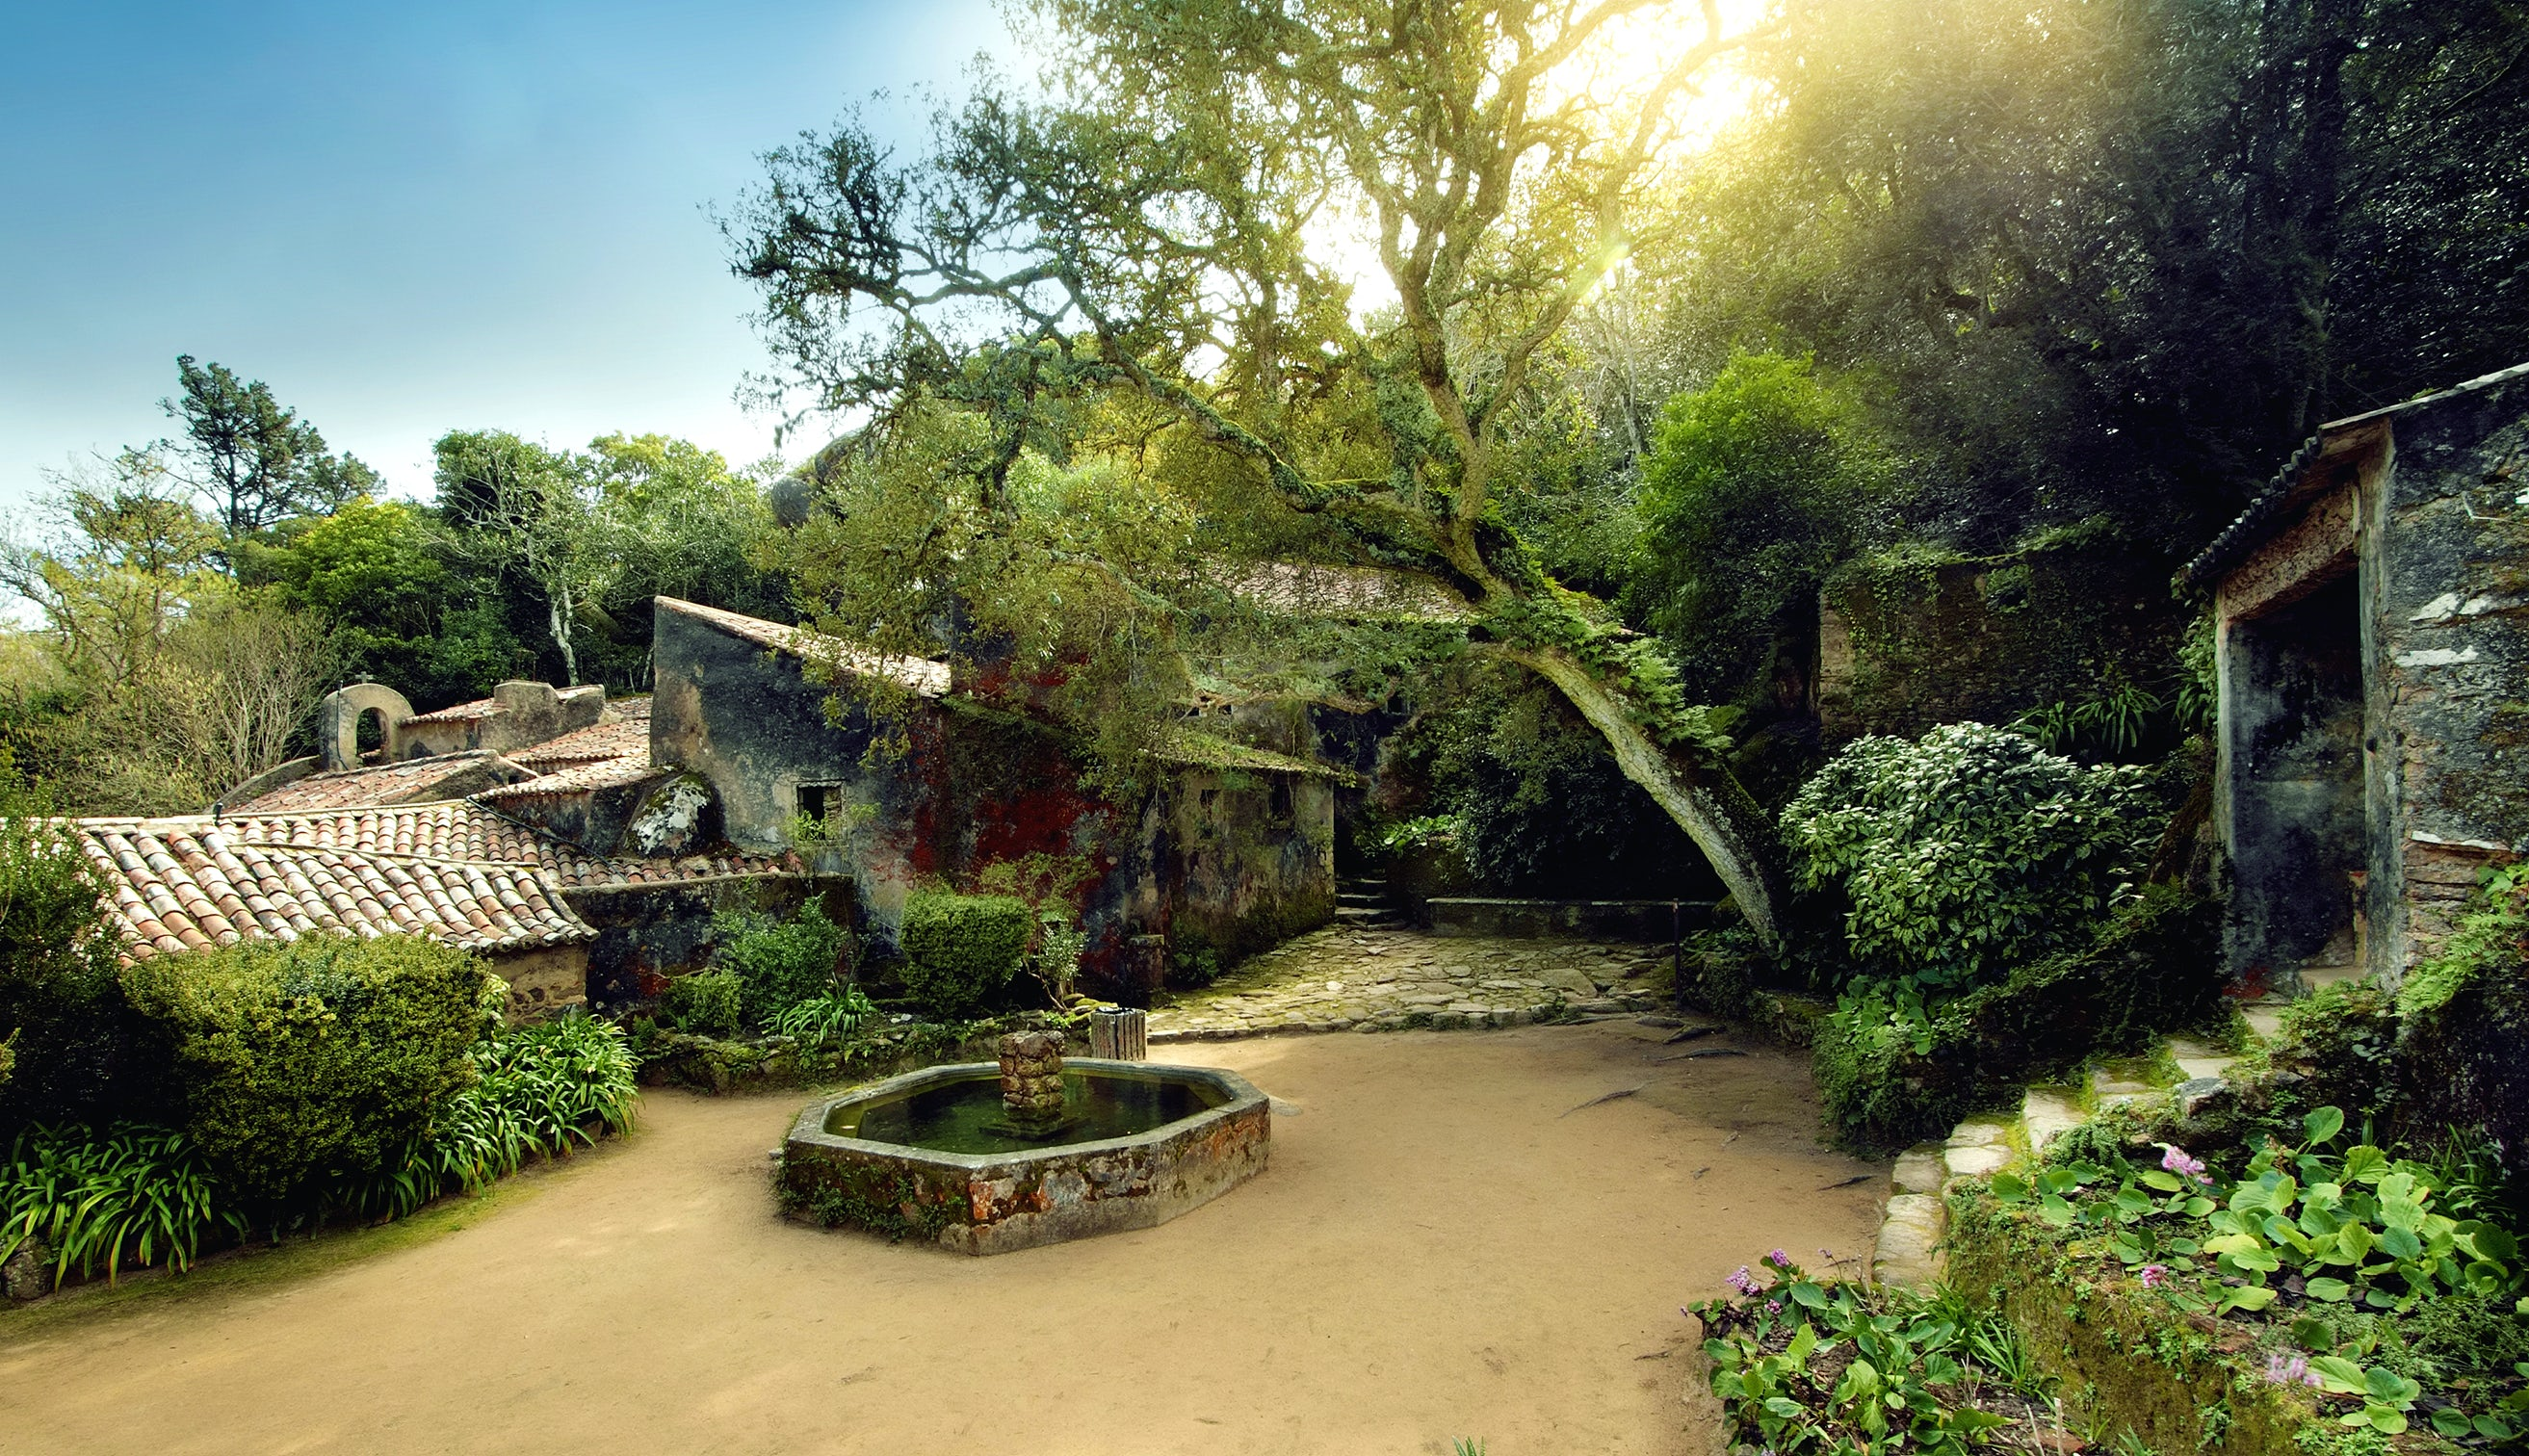 Another trip to Sintra - the Moon Hill